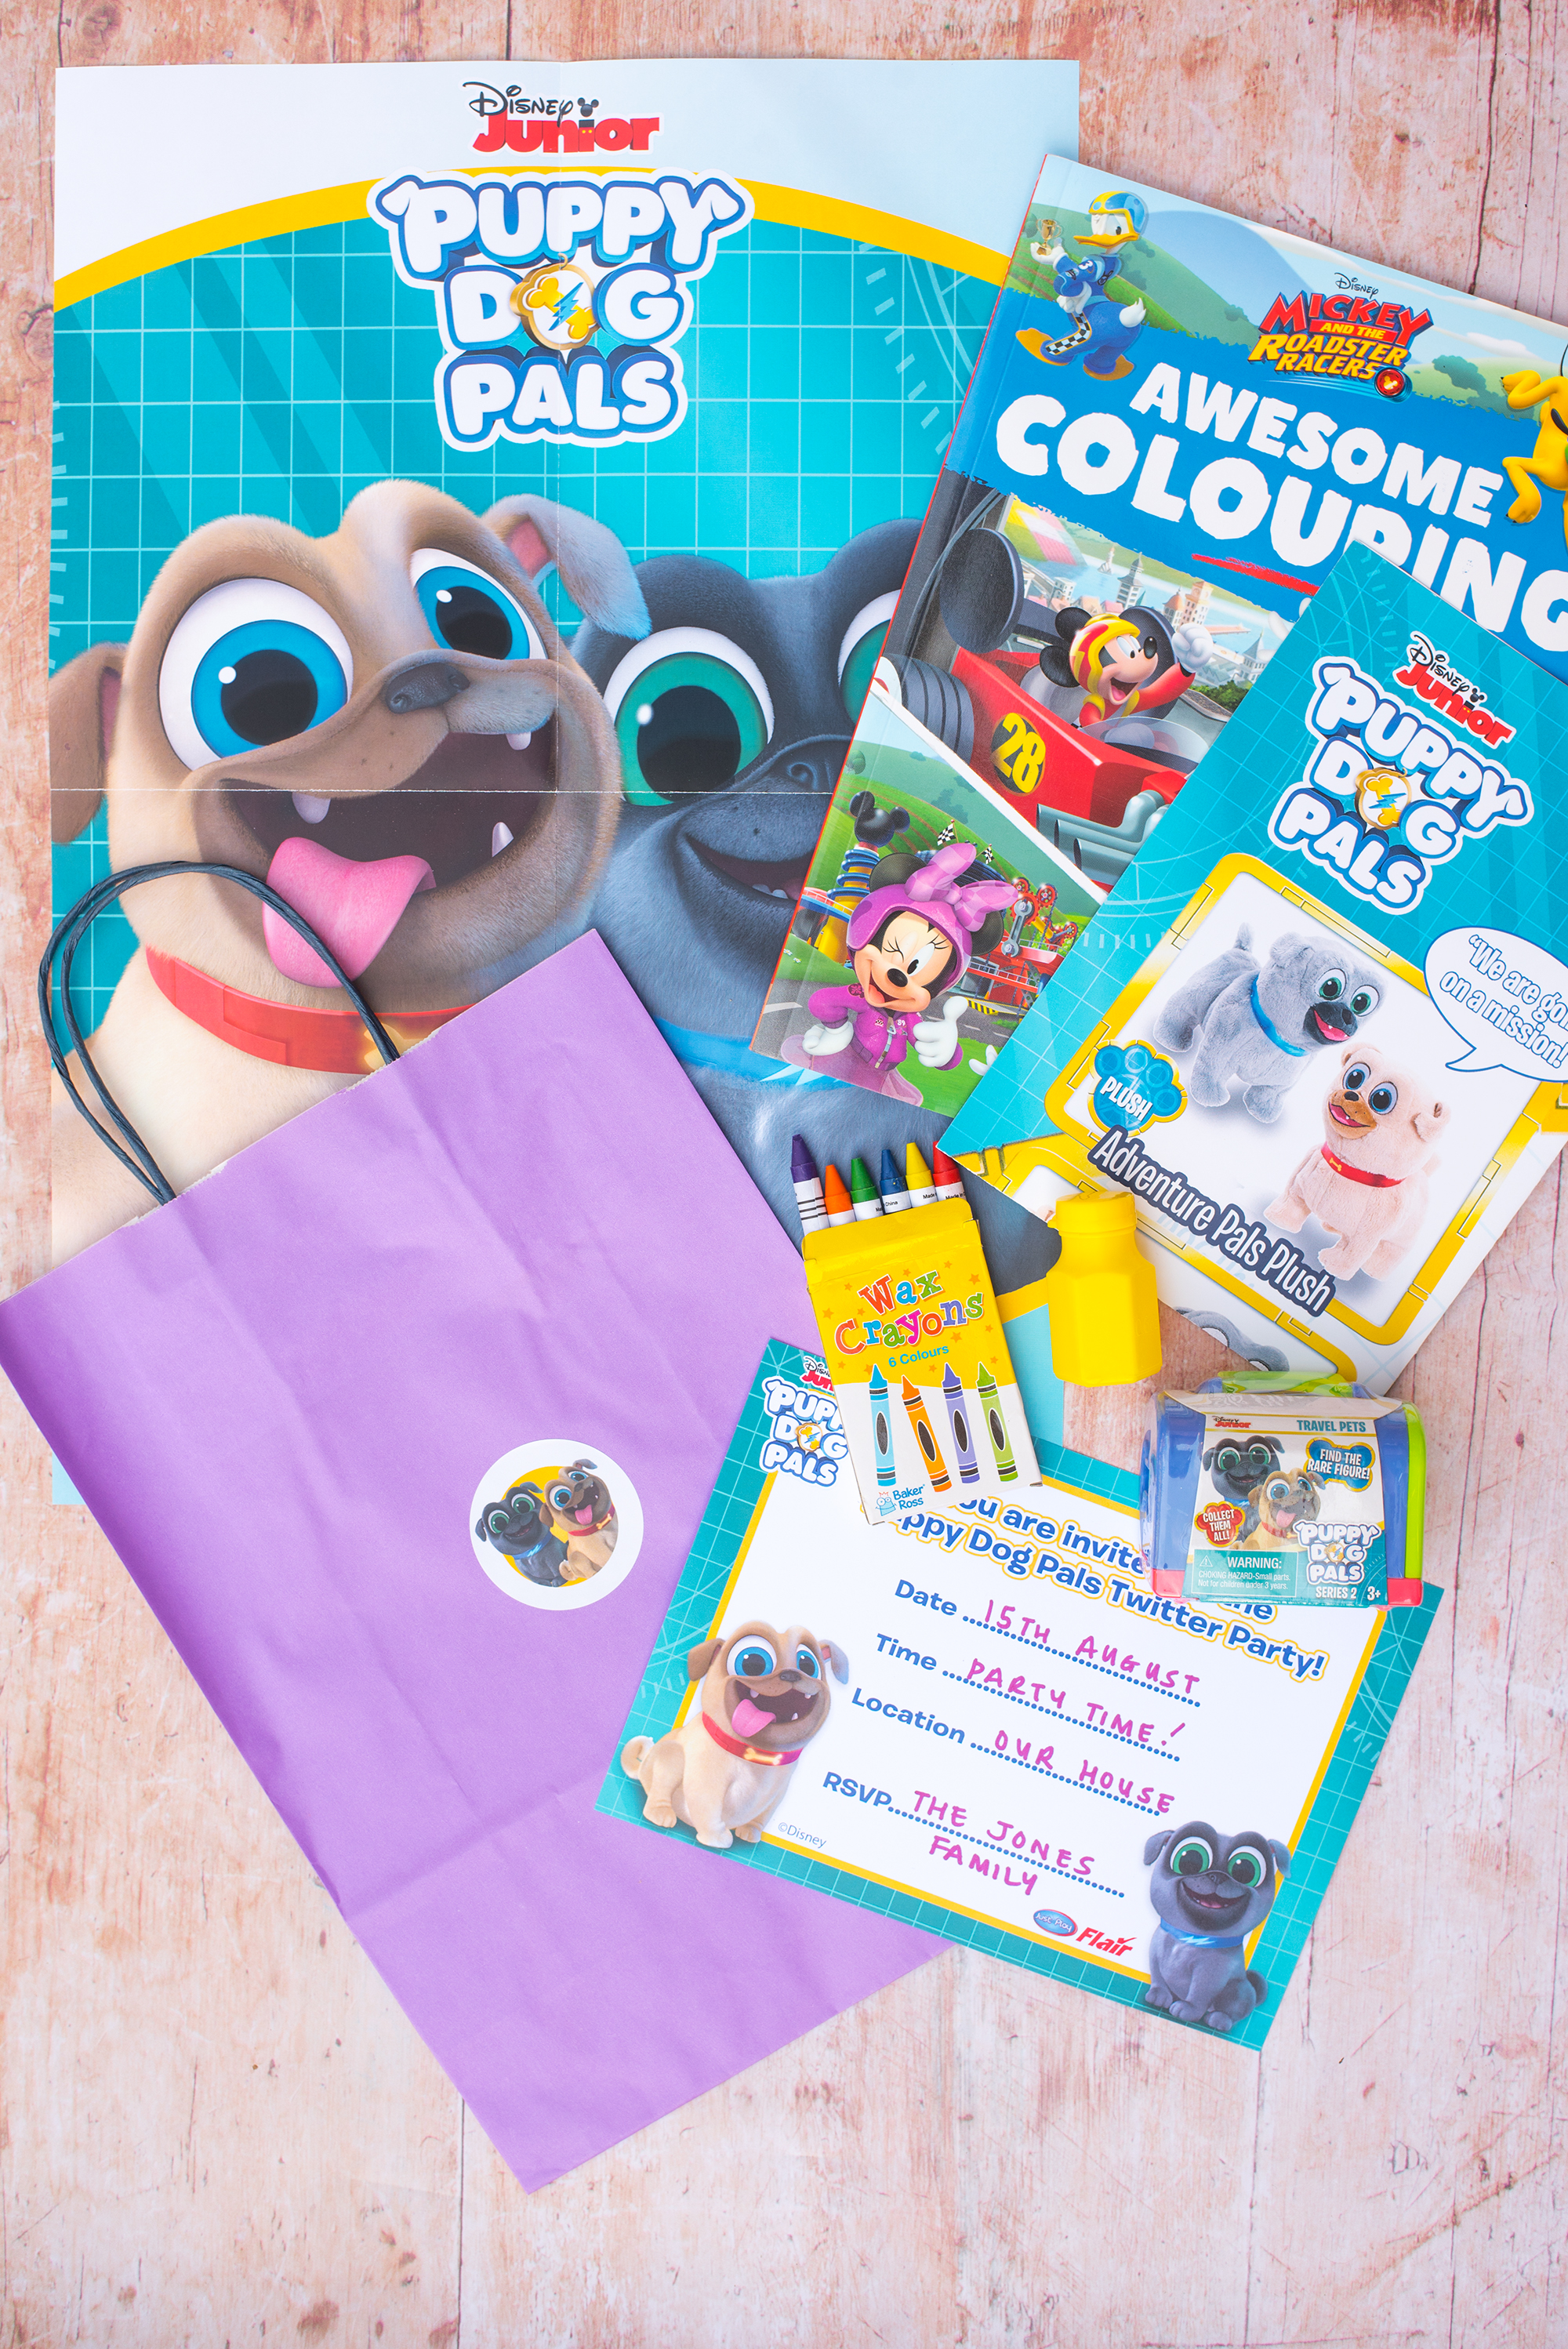 DISNEY JUNIOR PUPPY DOG PALS PARTY DAY IS COMING!